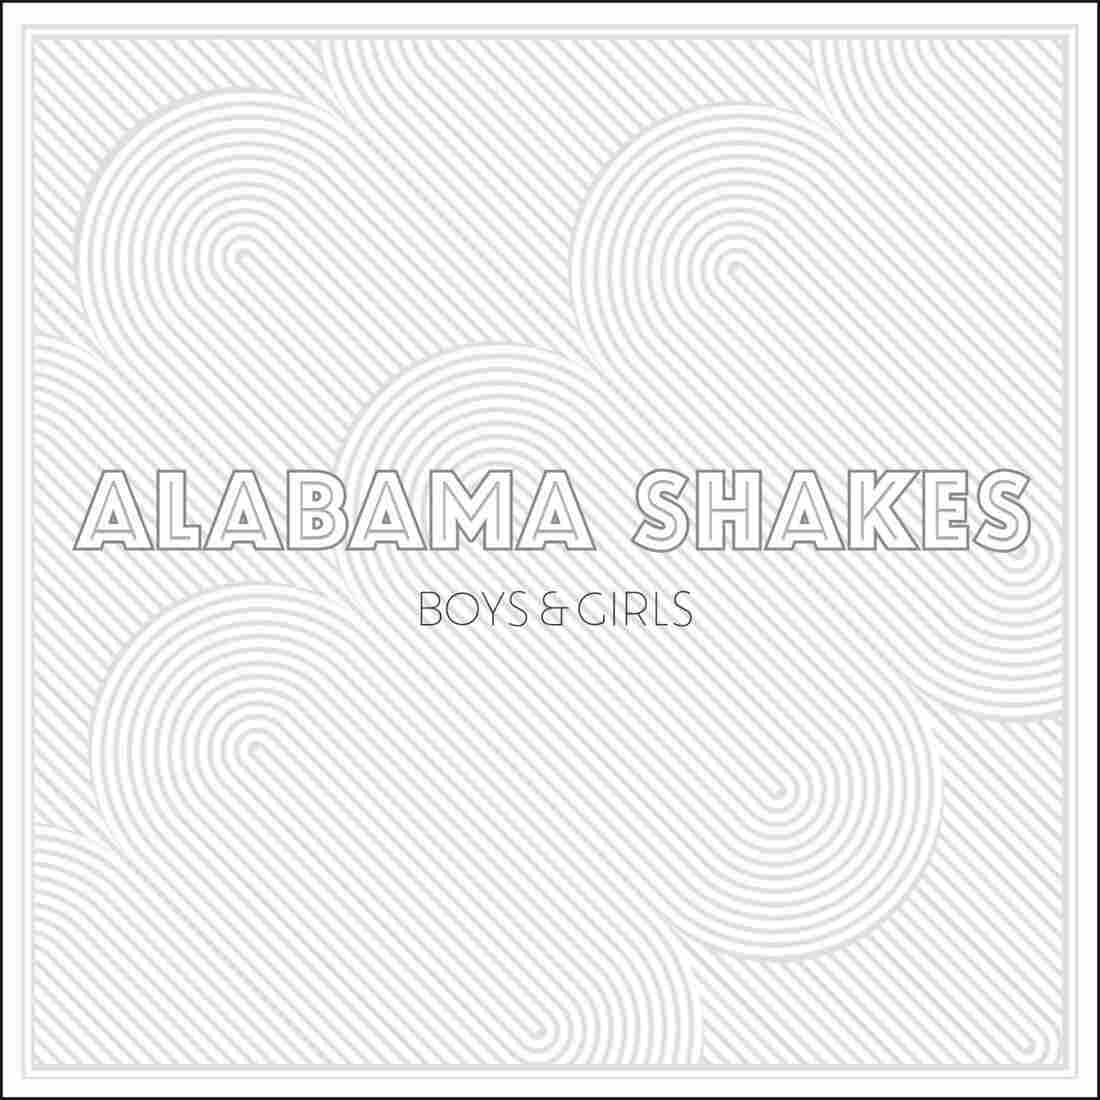 Alabama Shakes, Boys and Girls